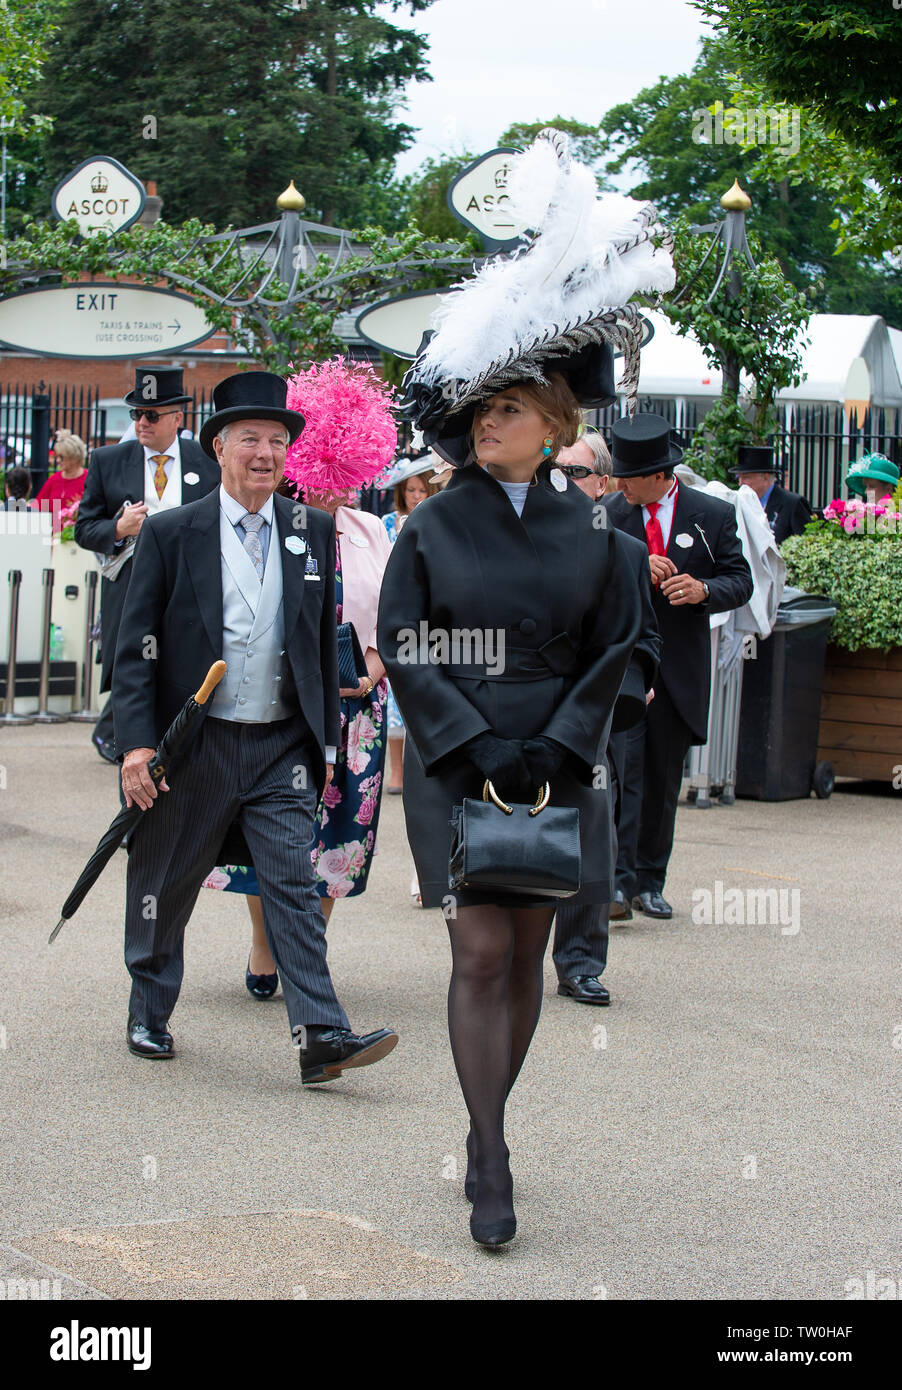 Ascot, Berkshire, UK. 18th June, 2019. A lady wears a big black and white hat on Day One of Royal Ascot, Ascot Racecourse. Credit: Maureen McLean/Alamy Live News - Stock Image